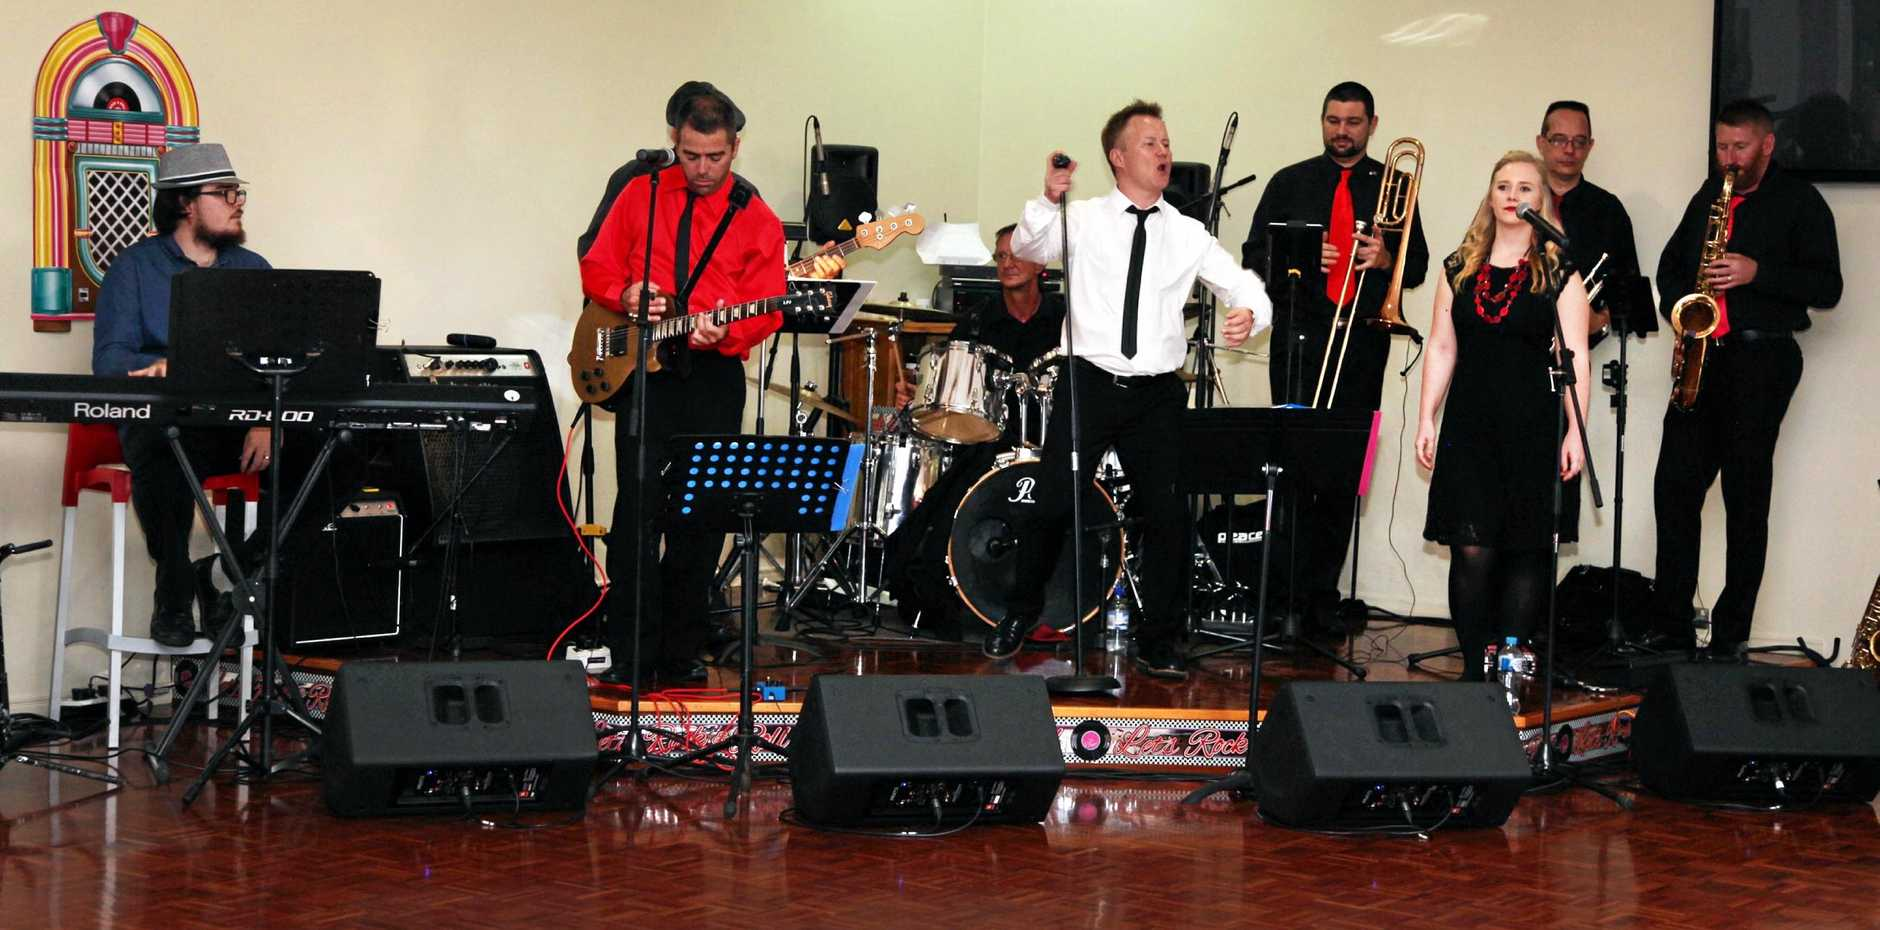 MIX: Soul City will lead Saturday's Maryborough CBD Street Party, held around the City Hall, and will coincide with this weekend's Fraser Coast Technology Challenge.